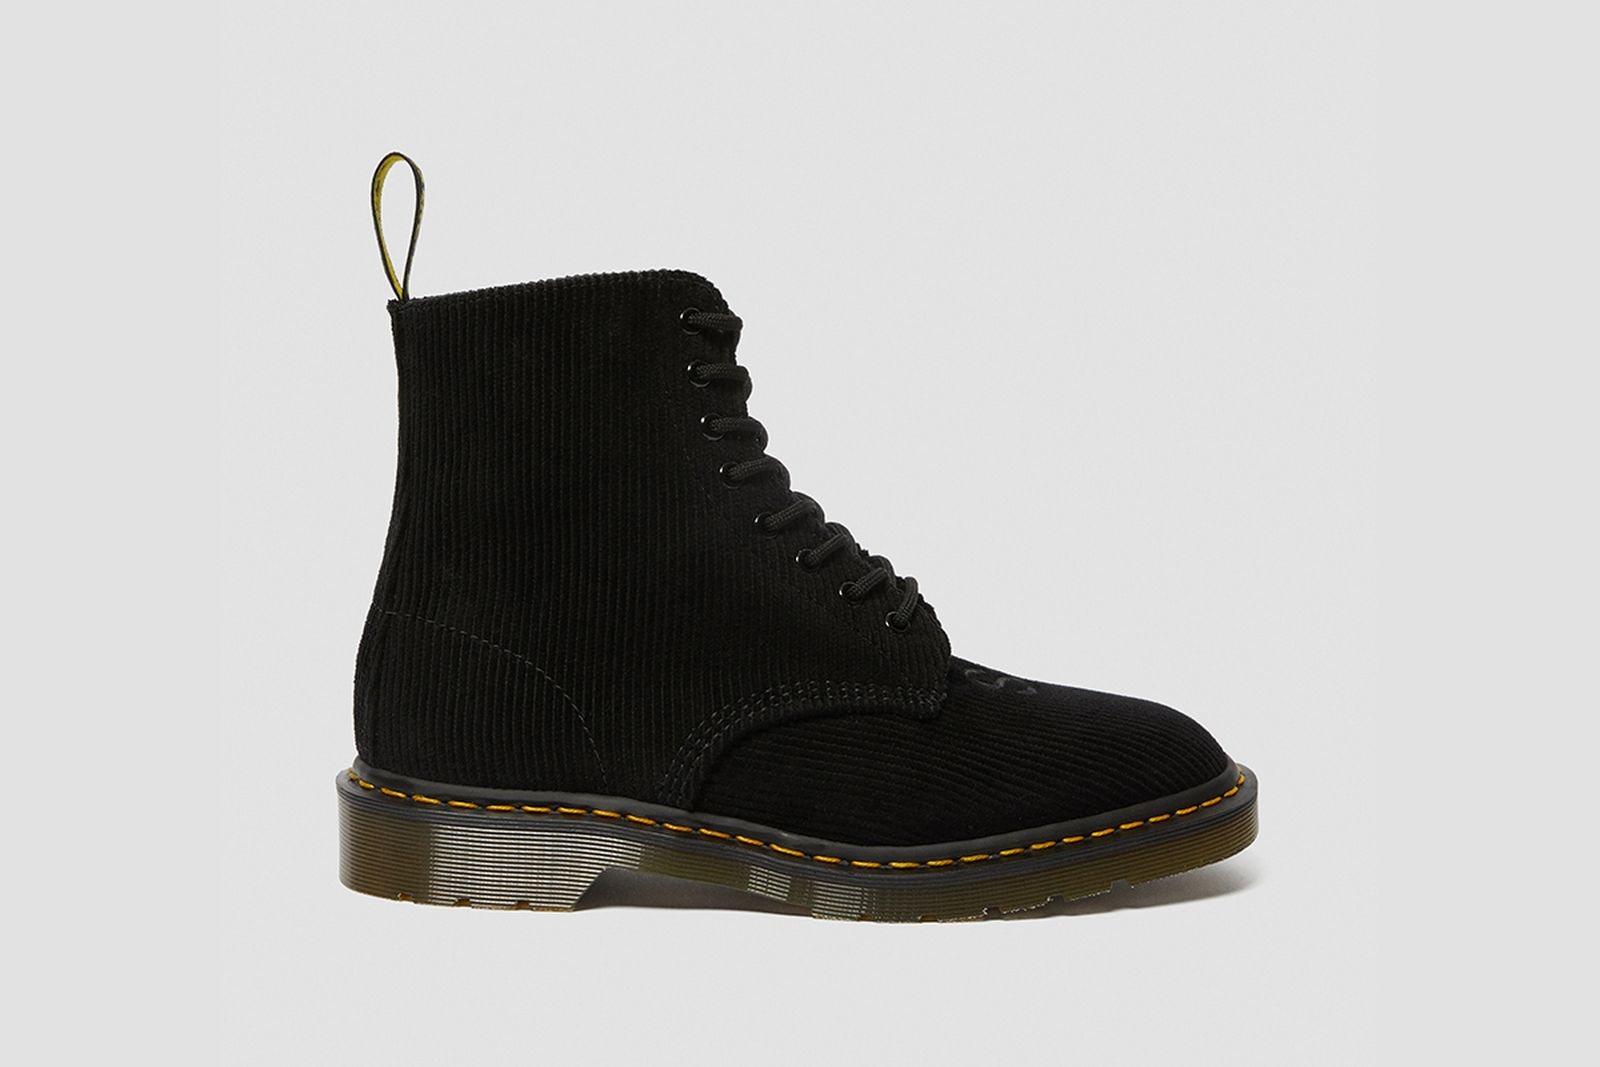 undercover-dr-martens-1460-release-date-price-08